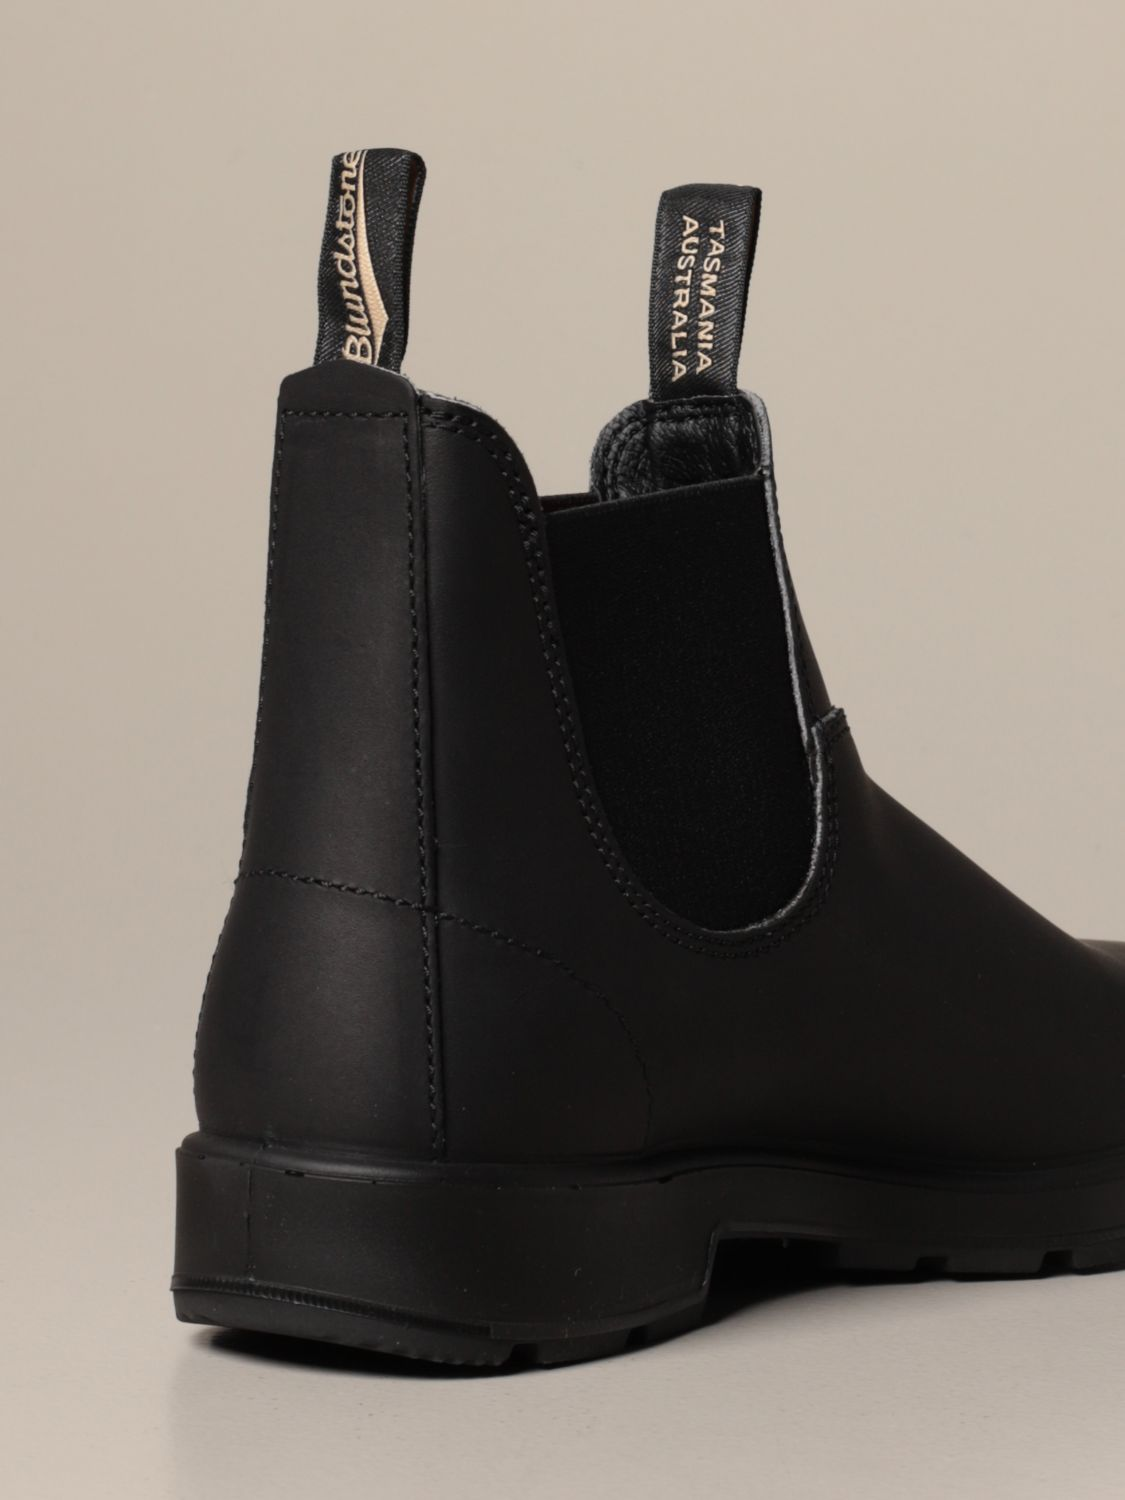 Boots Blundstone: Boots men Blundstone black 3